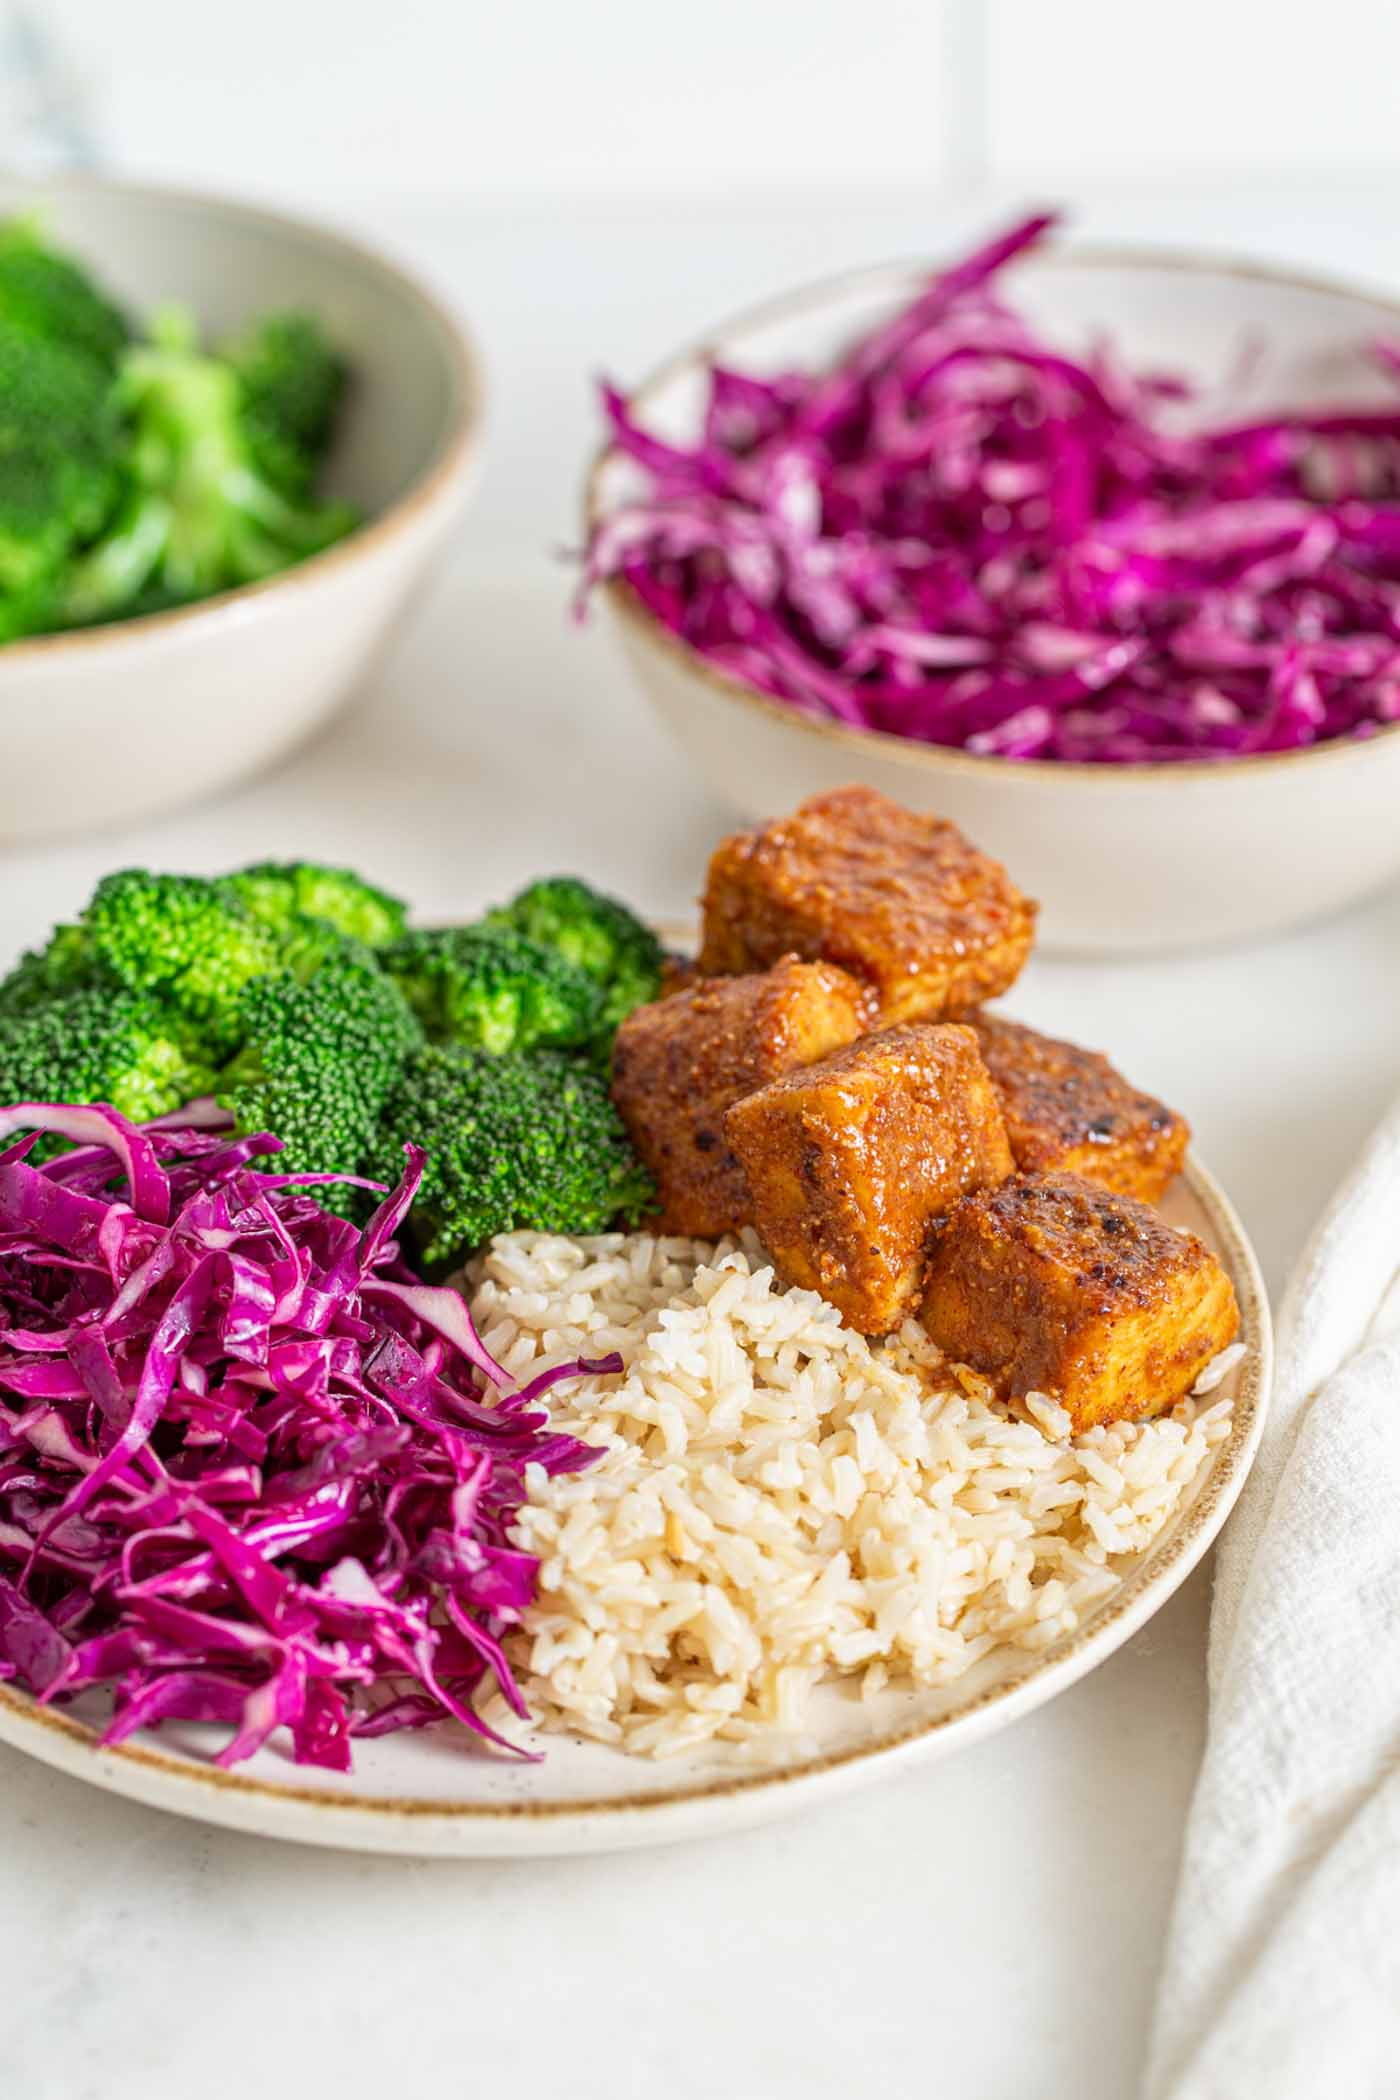 Baked tempeh brown rice bowl with red cabbage and broccoli